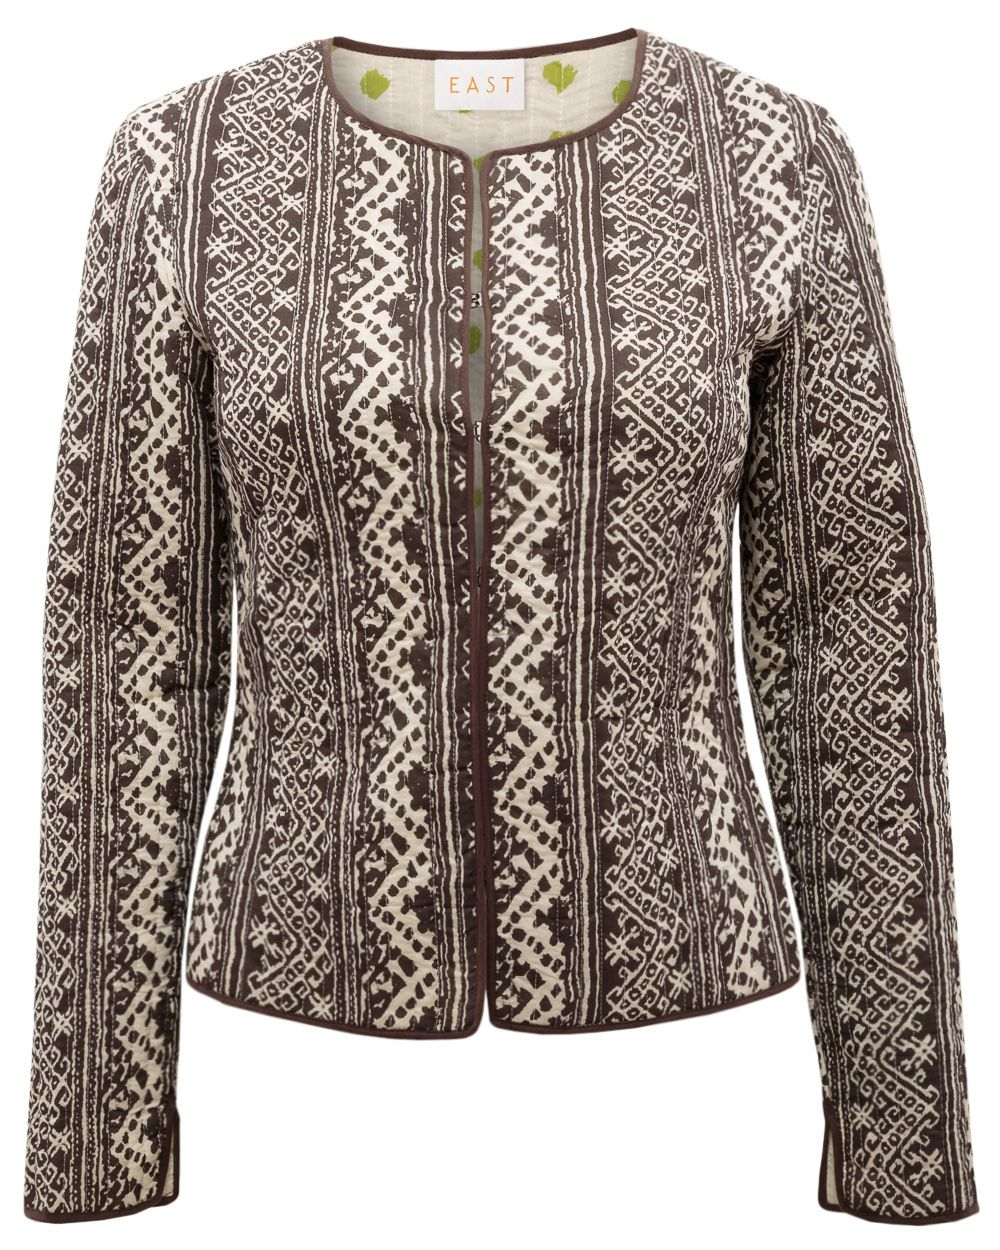 Mara quilted jacket